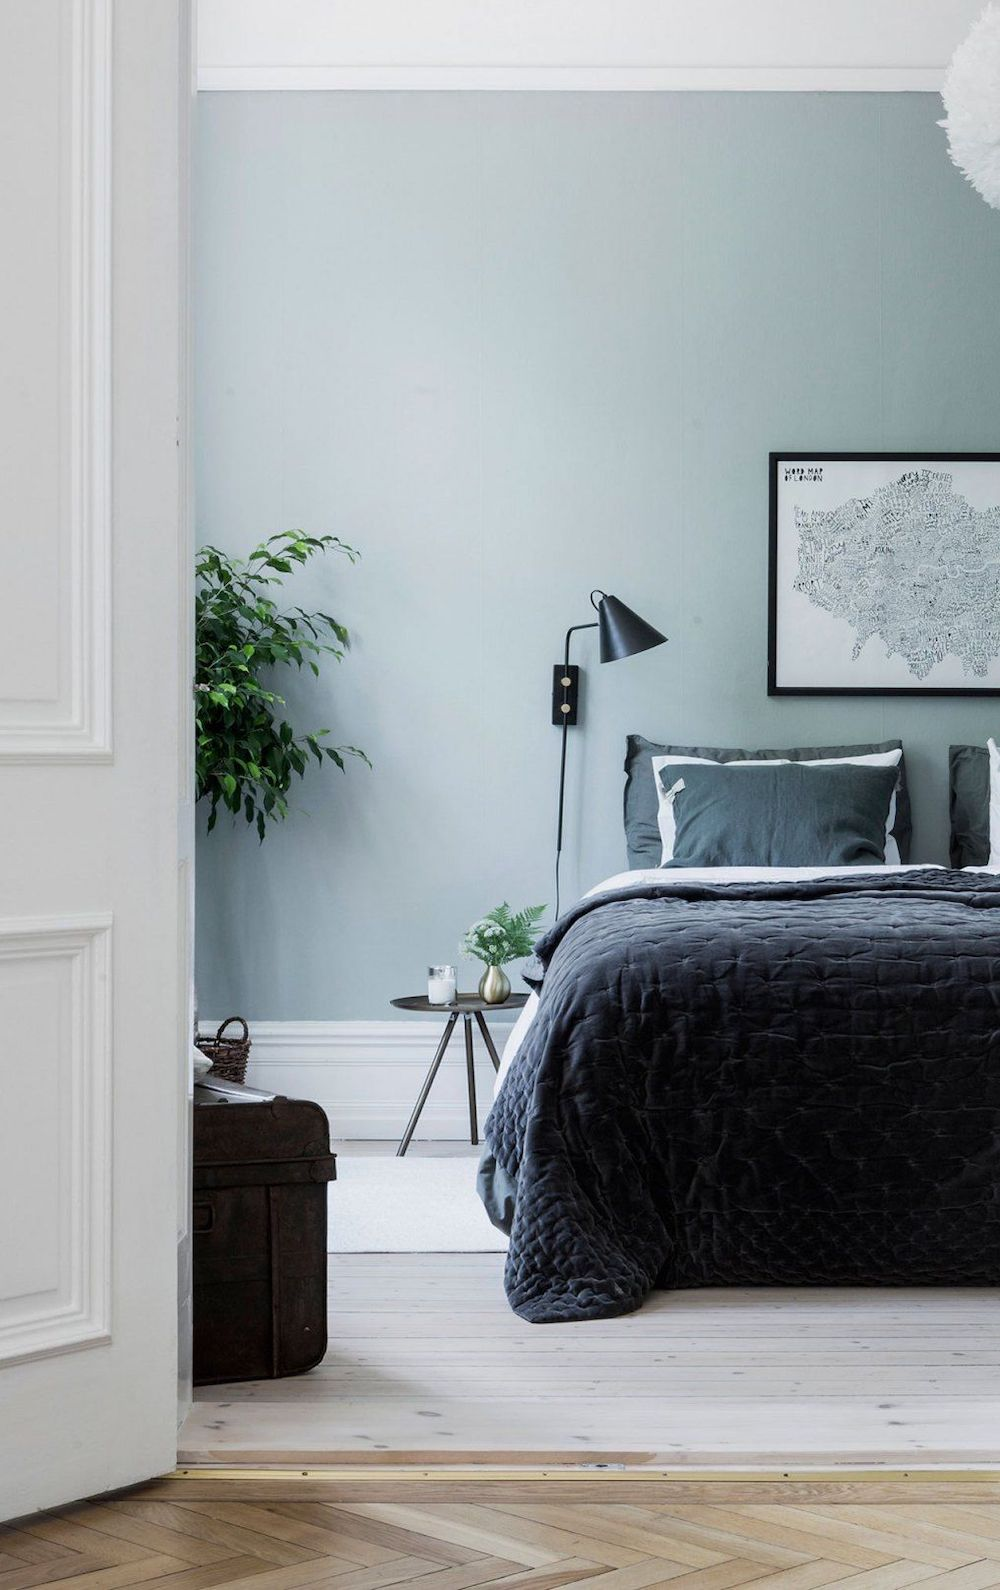 Black scandi wall sconce in bedroom via Alvheim